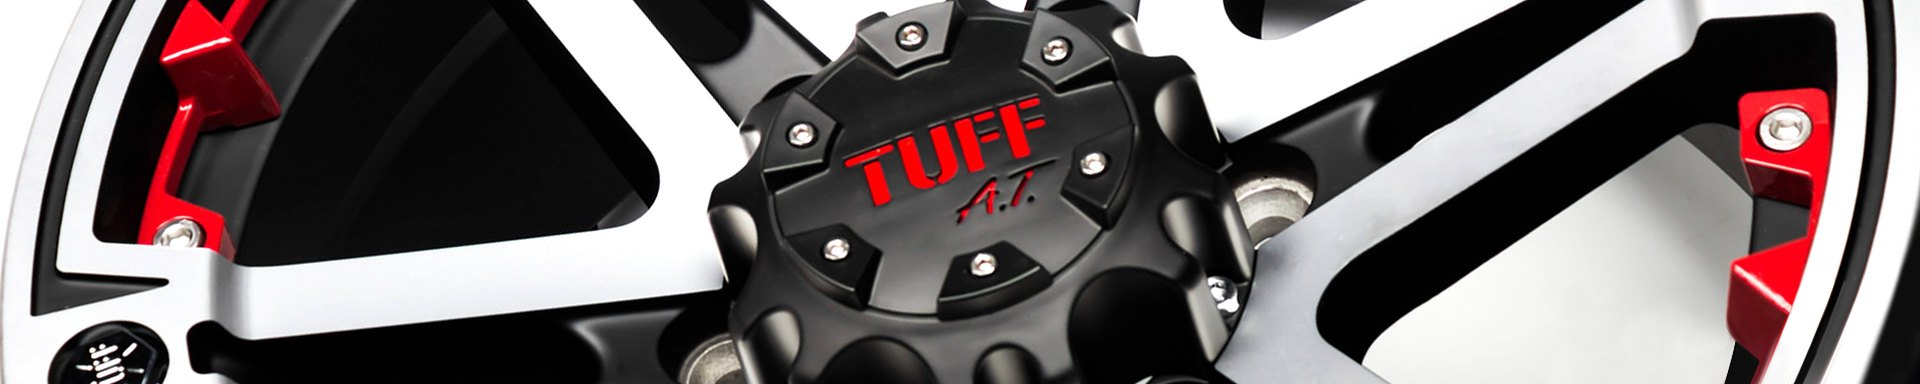 Universal Tuff WHEELS & RIMS